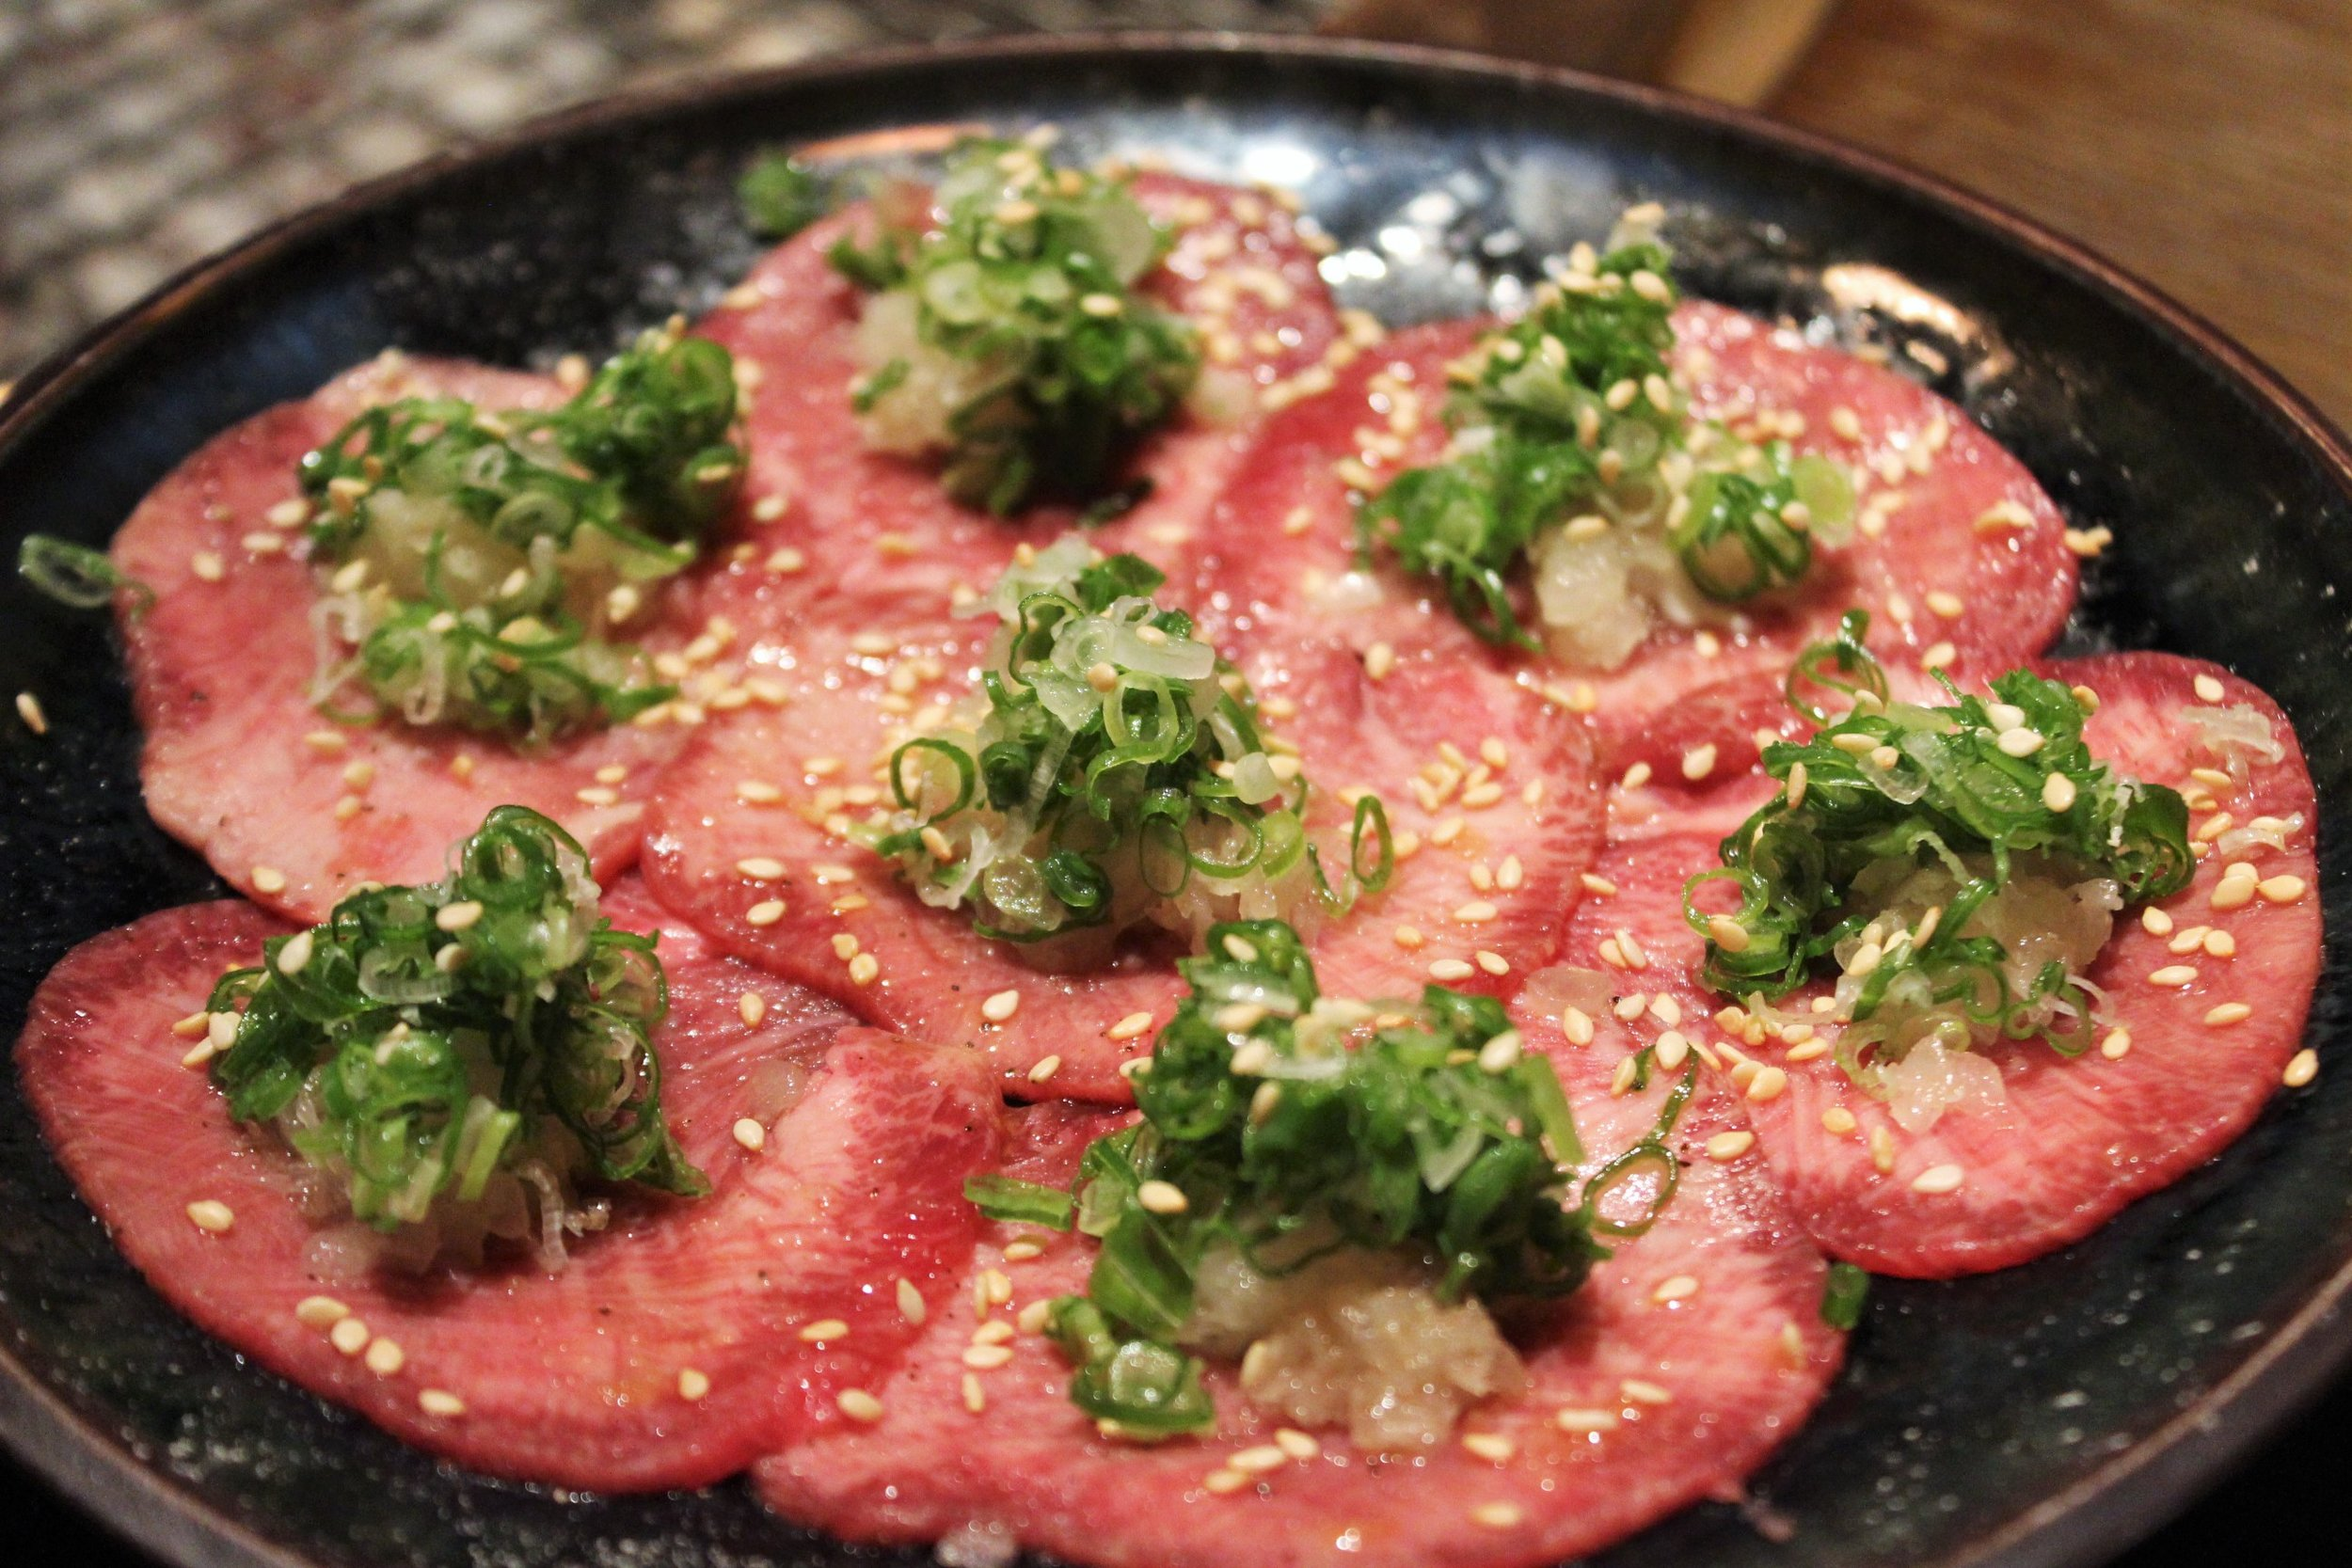 Beef Tongue with Onion, Scallions, Sesame Seeds